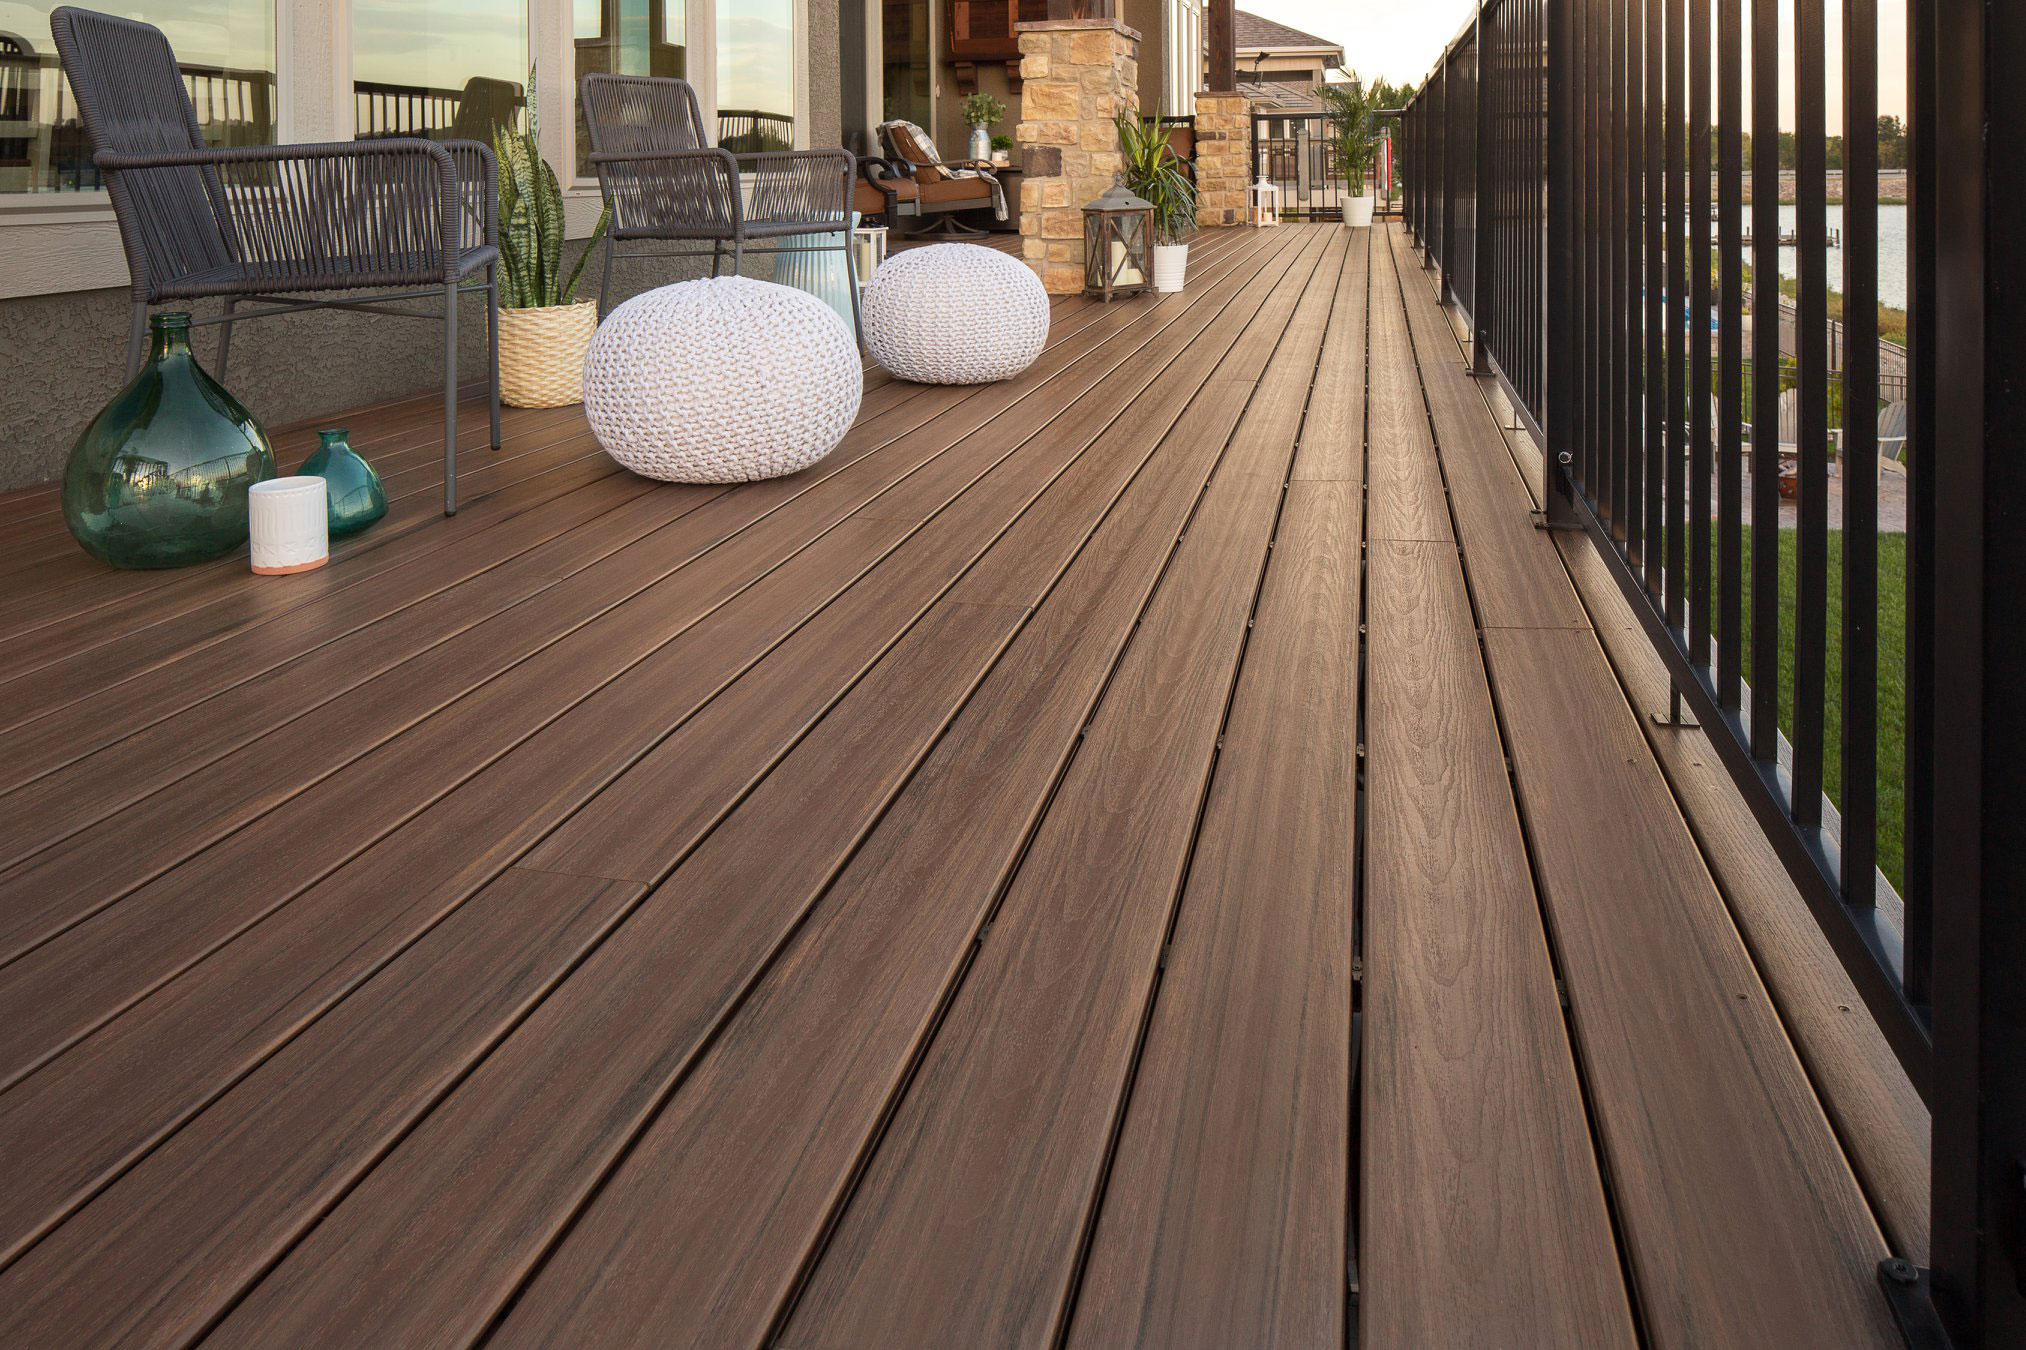 Siding, Decking, & Railing